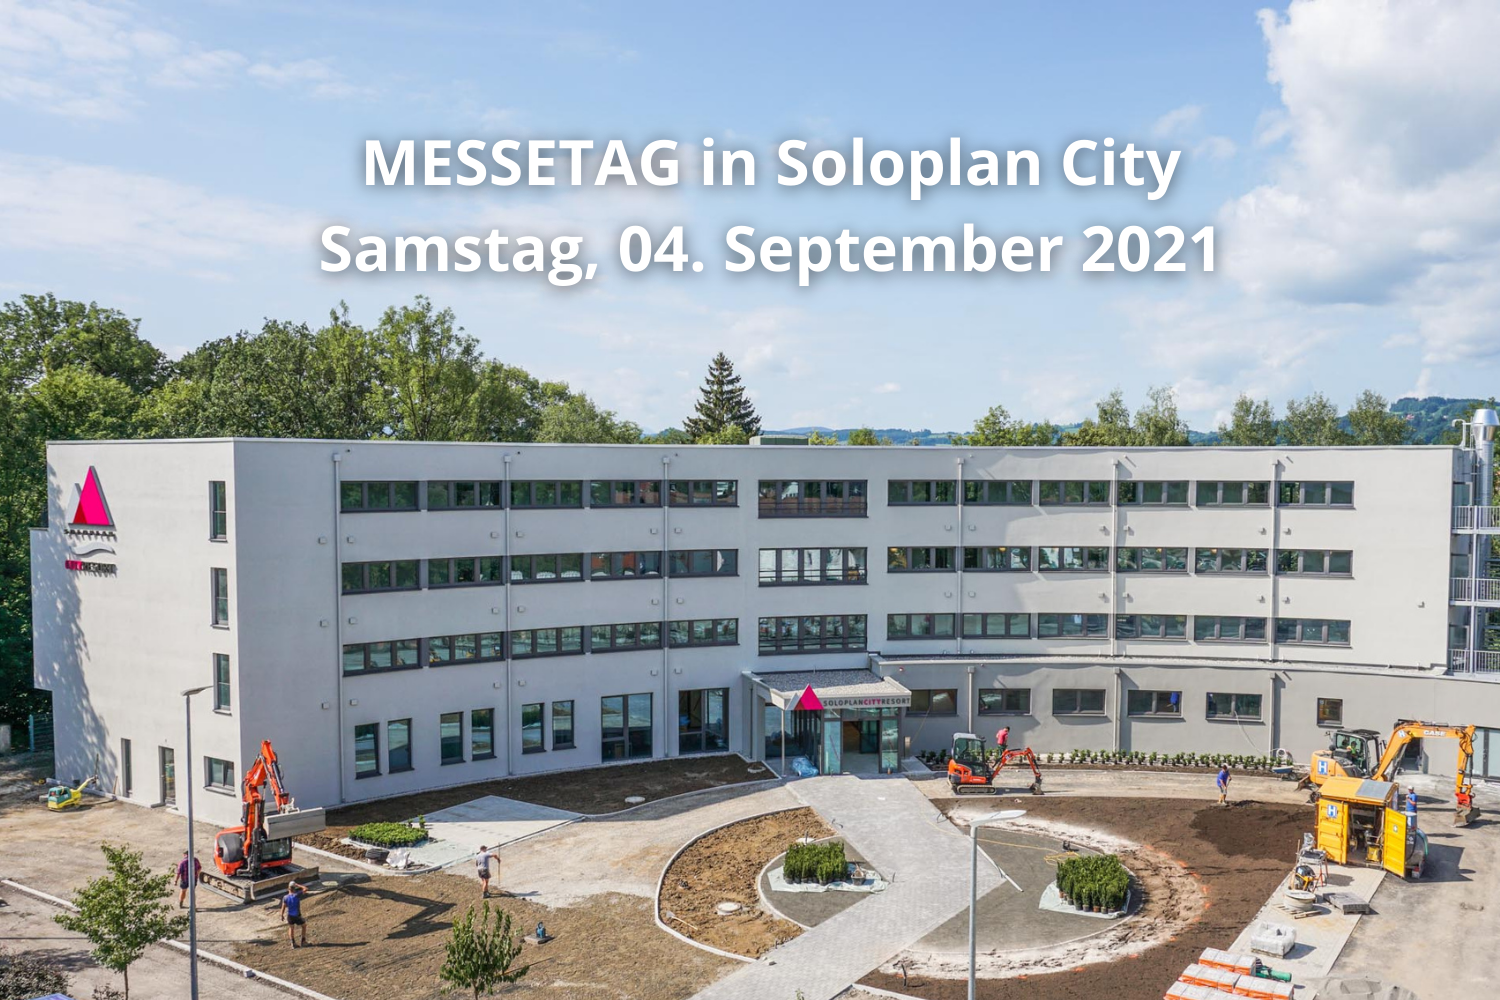 Messetag in Soloplan City